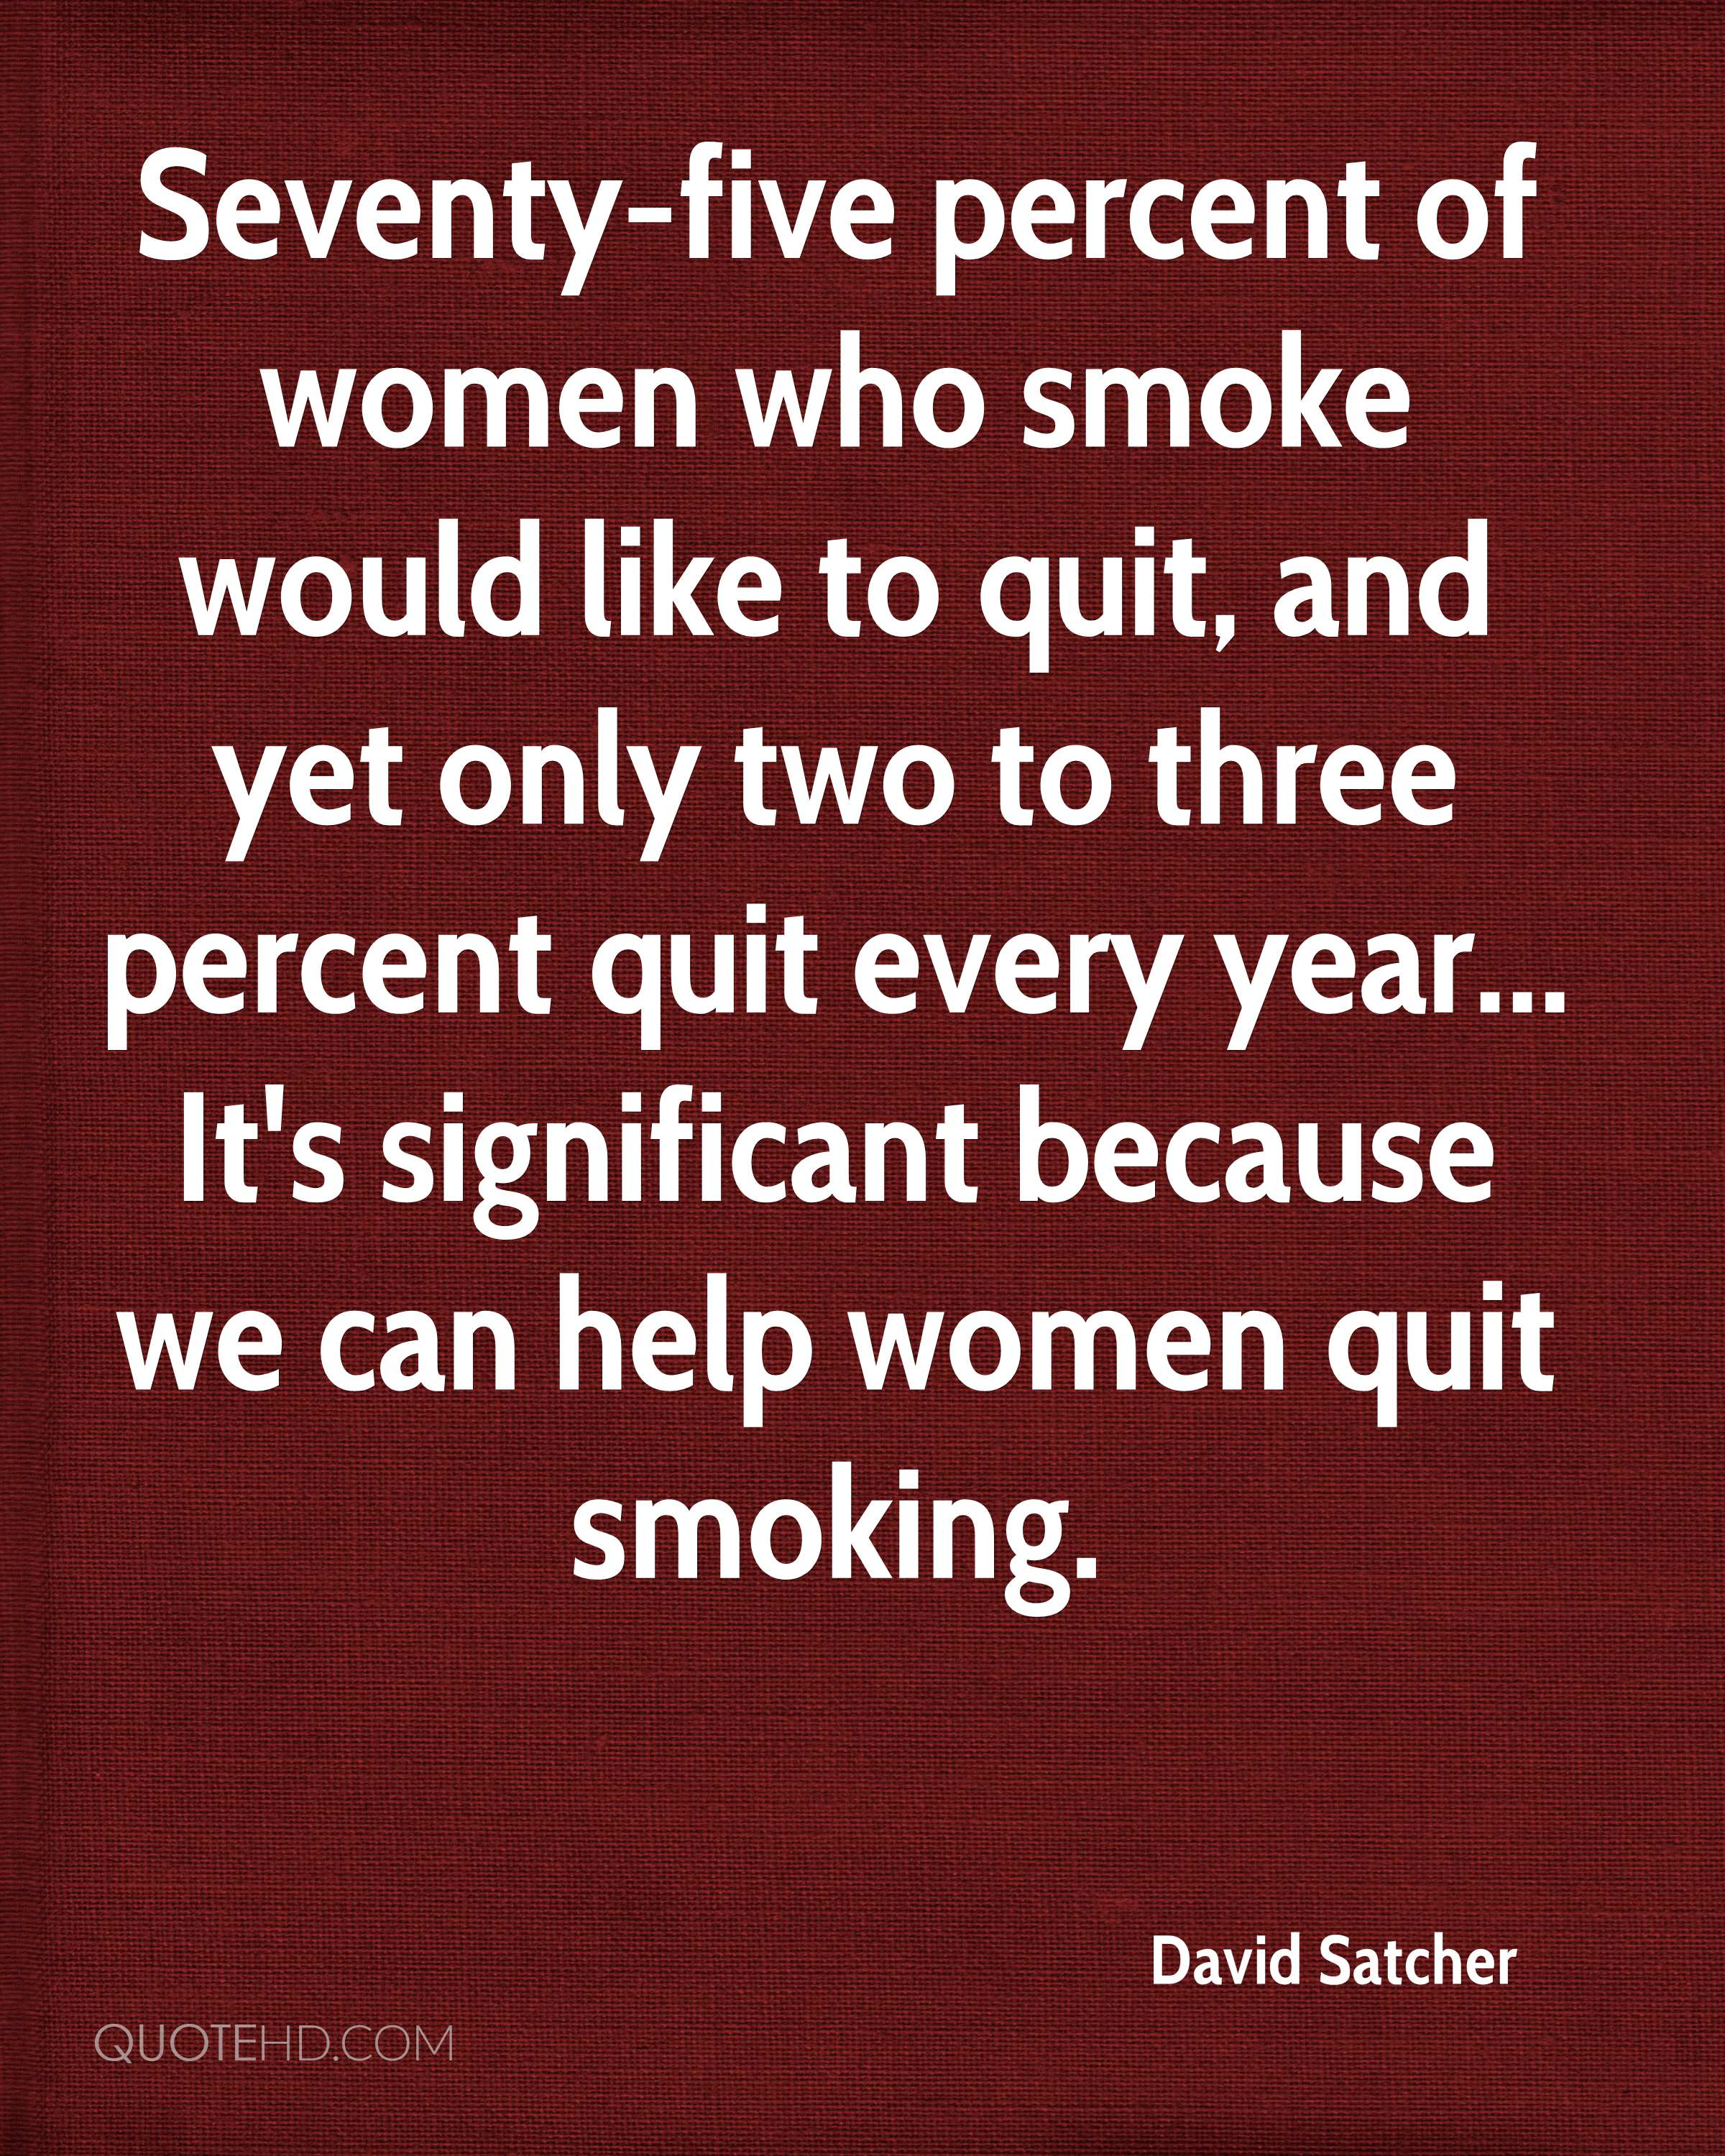 Seventy-five percent of women who smoke would like to quit, and yet only two to three percent quit every year... It's significant because we can help women quit smoking.